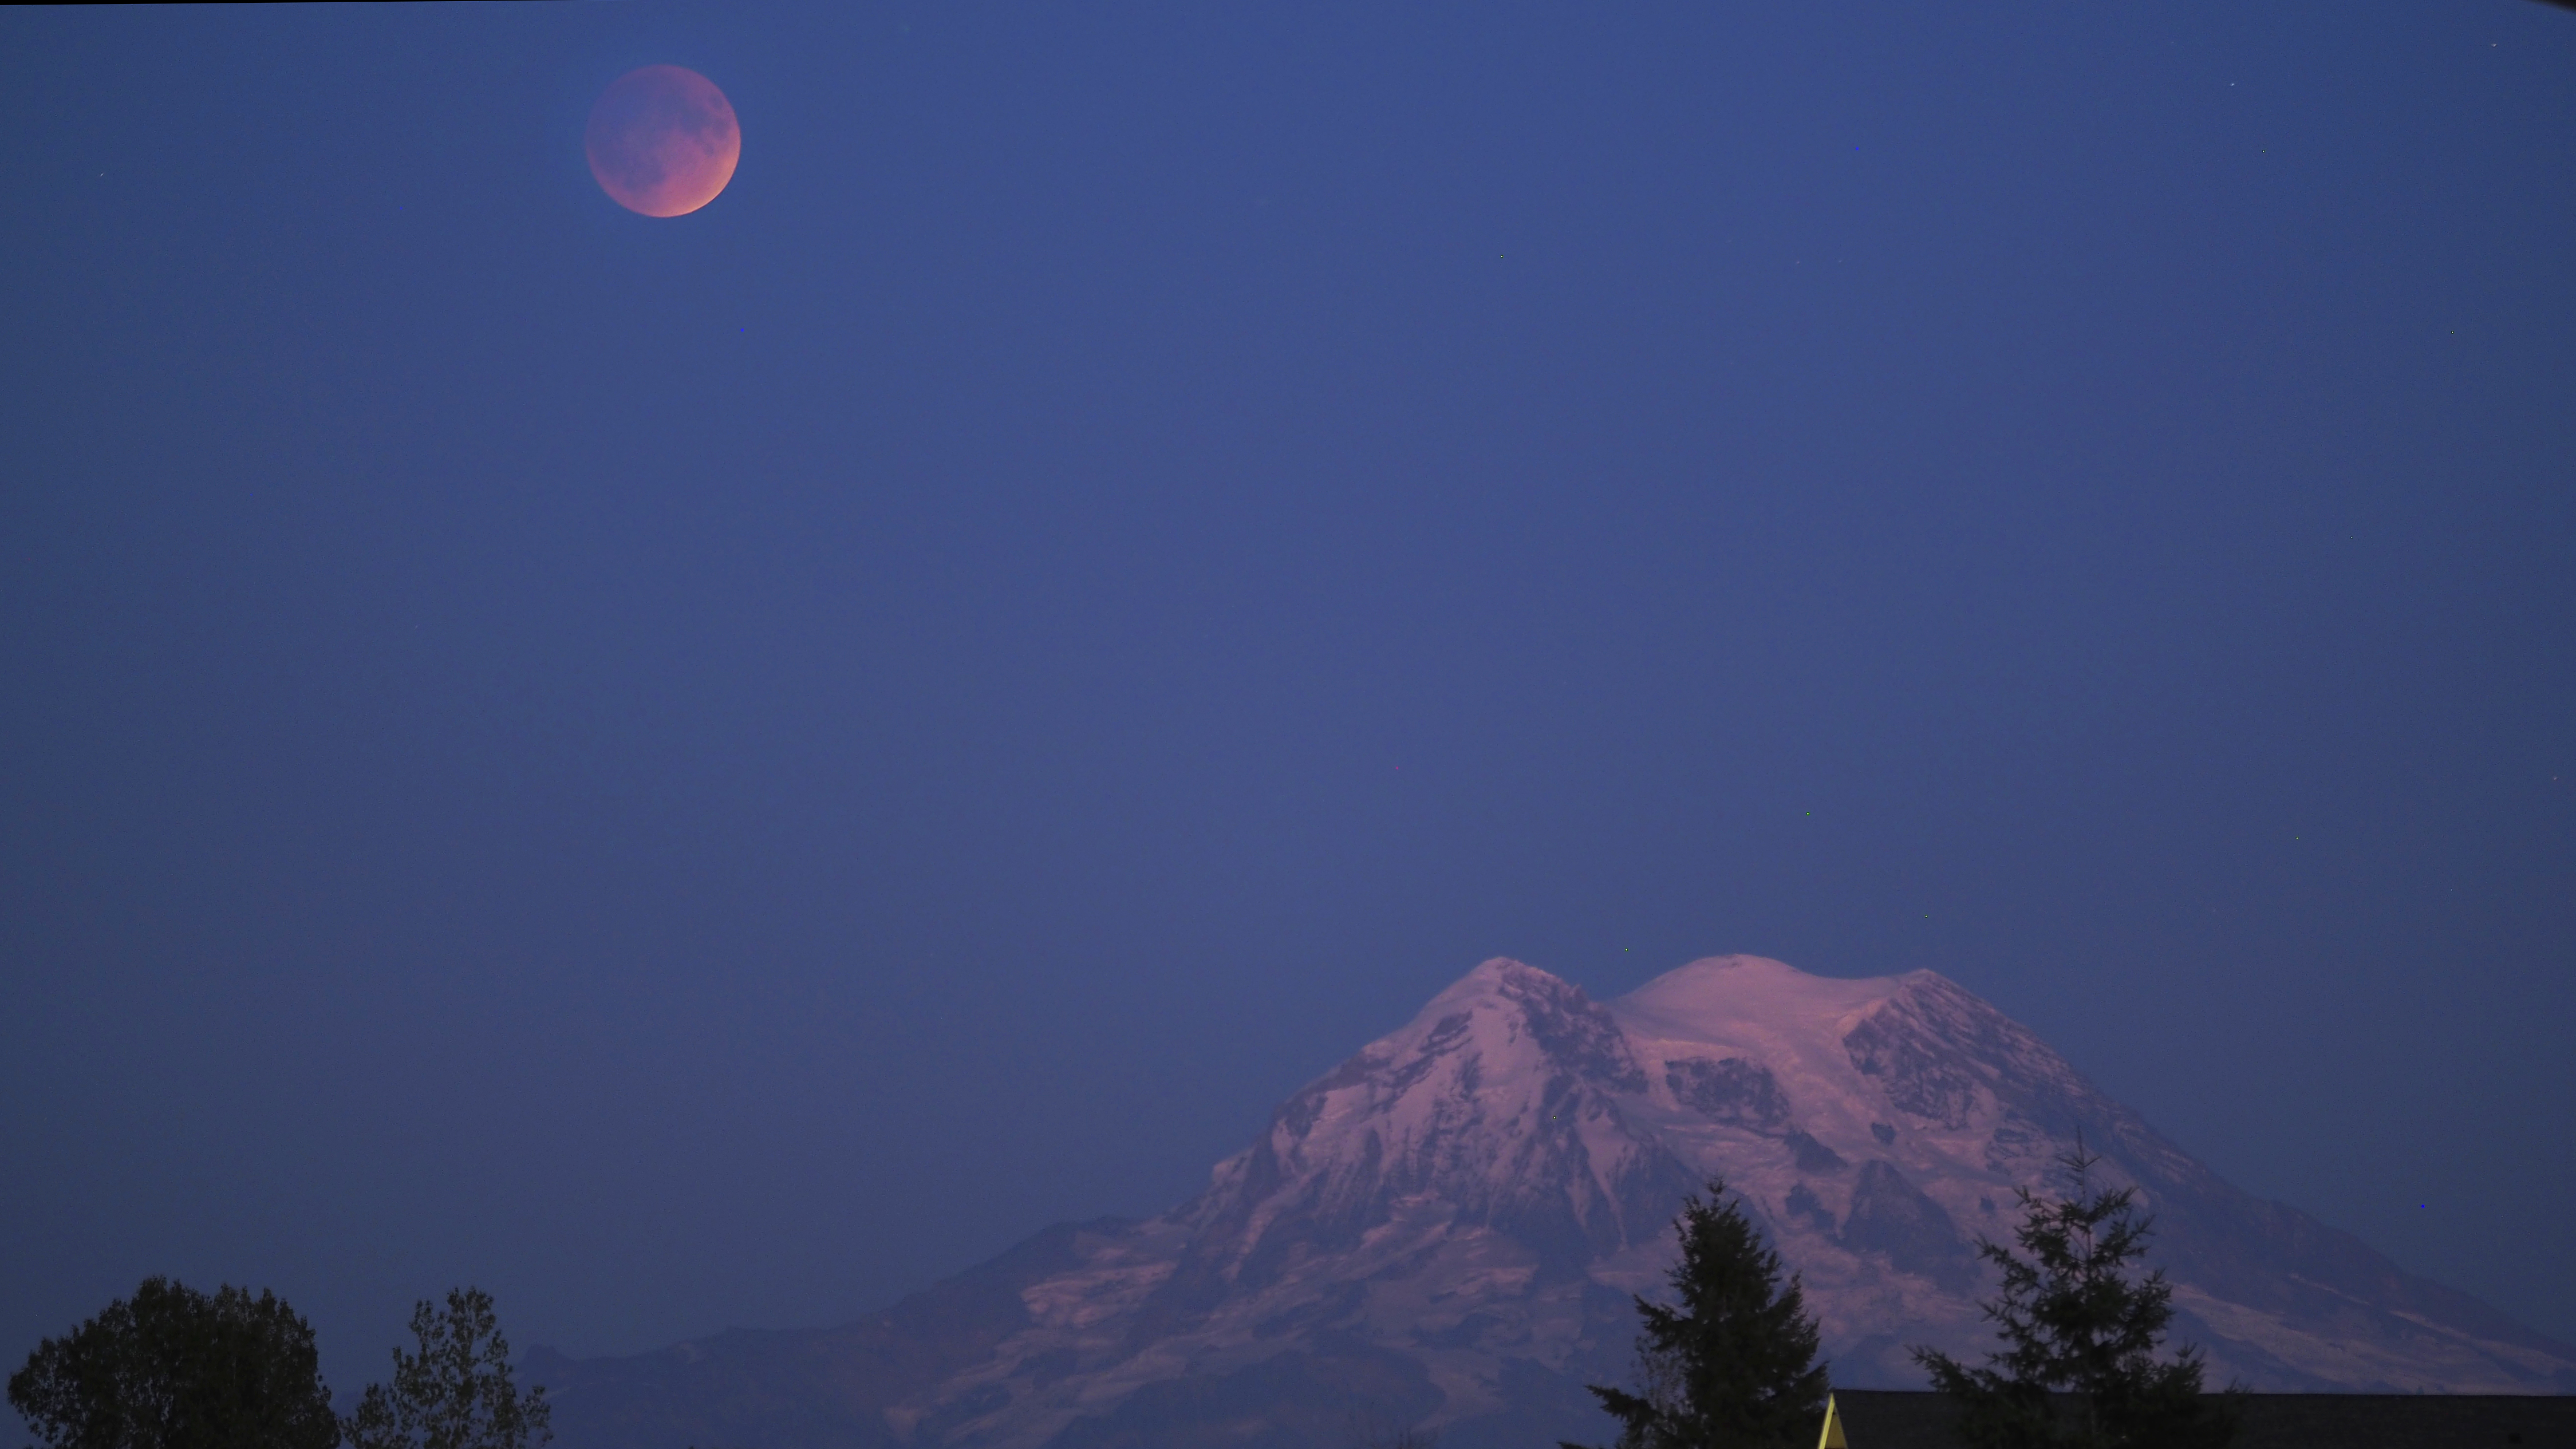 Blood Moon over Mount Rainier-9-27-15. Photo Credit: Kirk Diaz